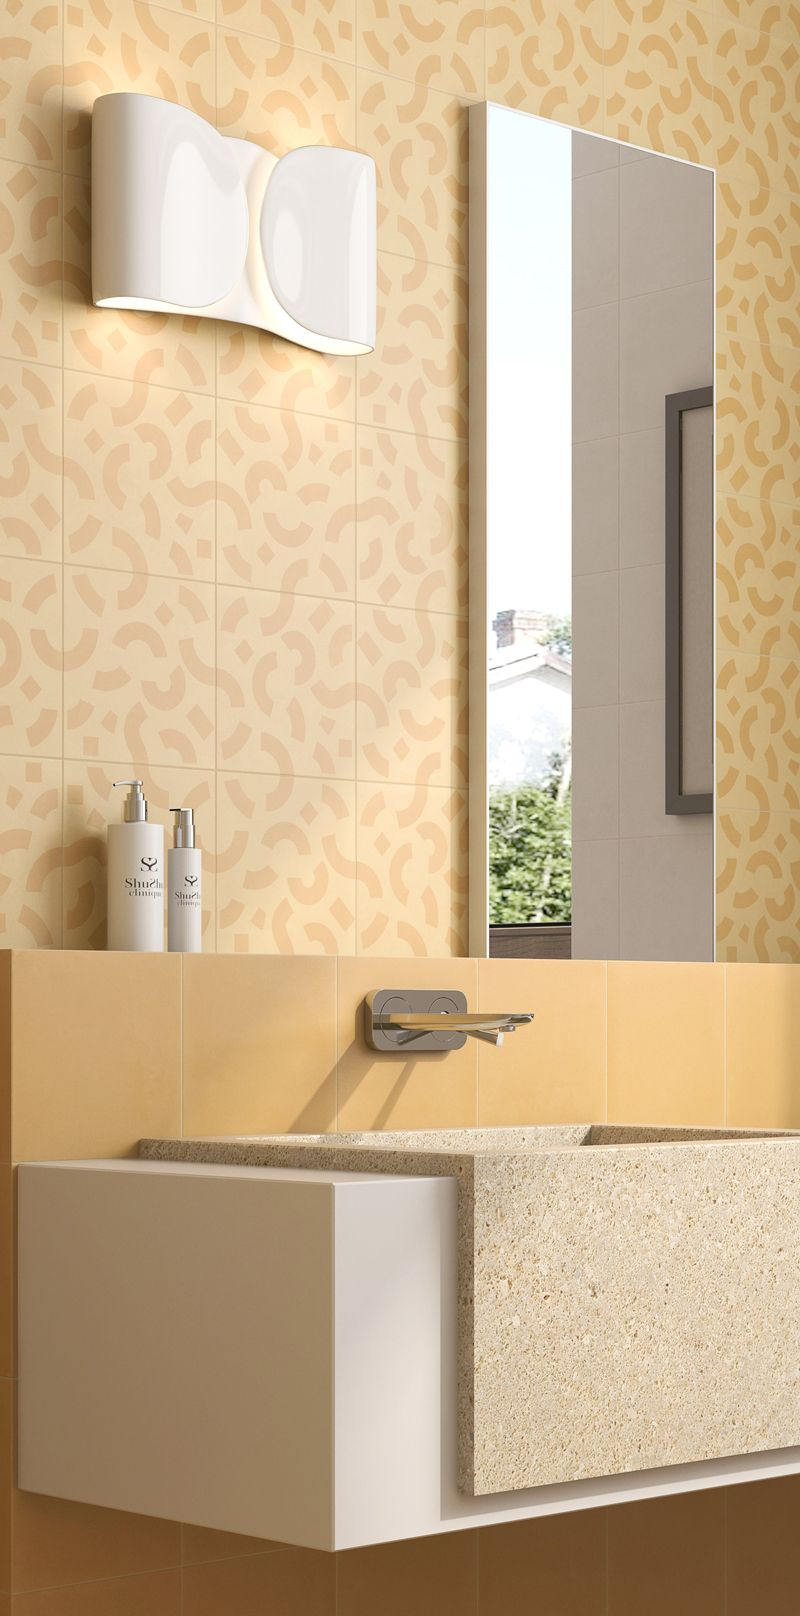 Trending Bathroom Designs Cool Trending #bathroom Ceramic Tiles Design An Exclusive #bathroom Inspiration Design